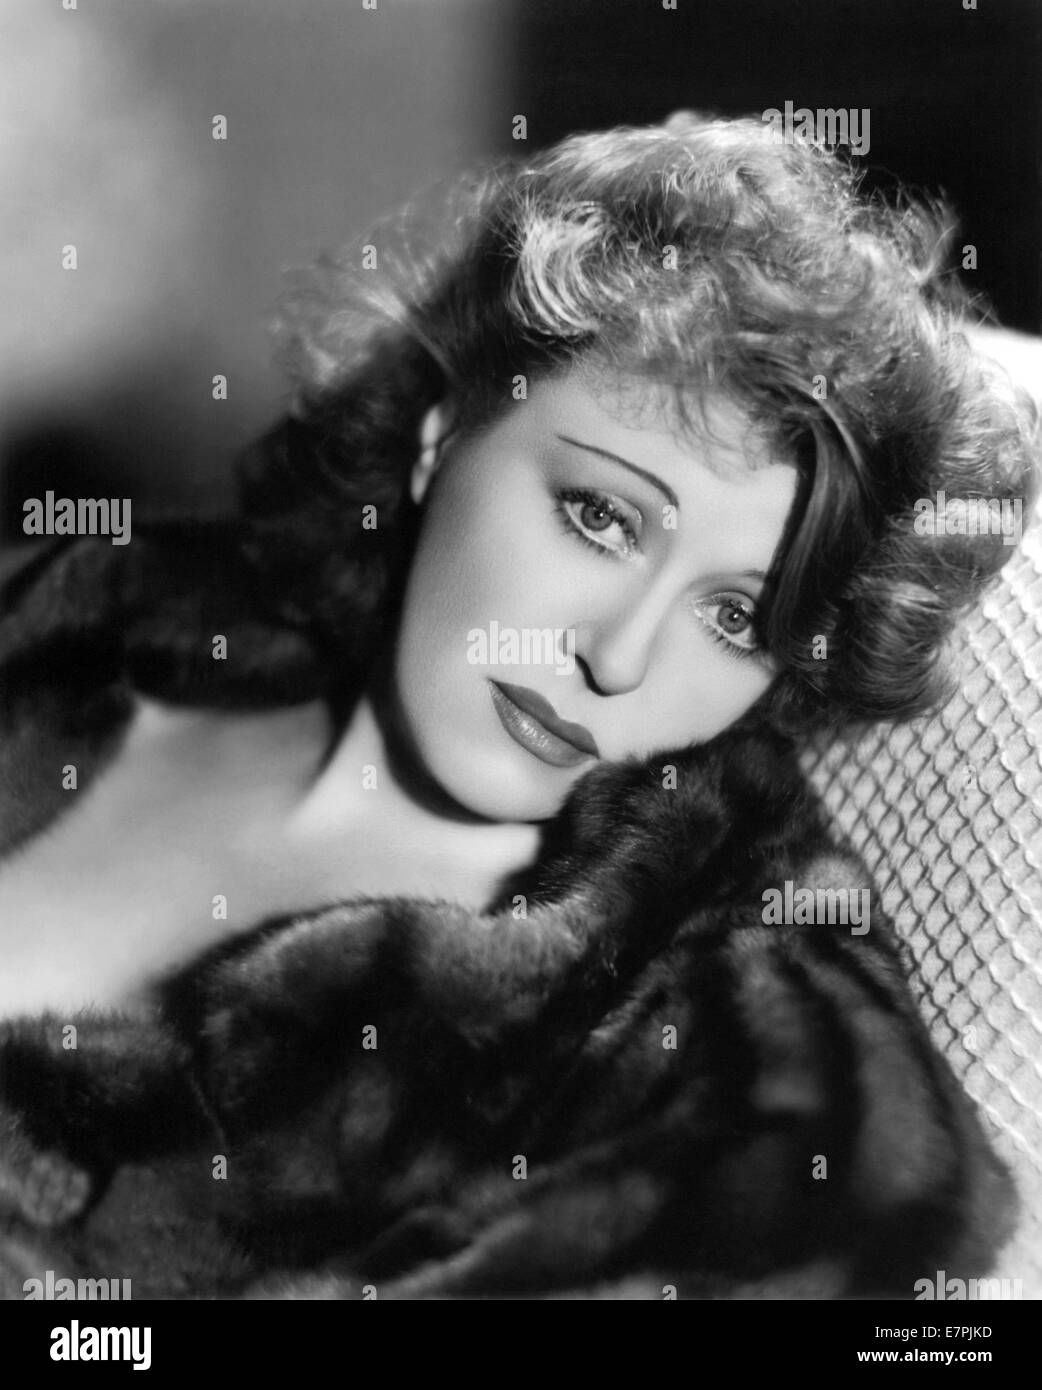 ruth-chatterton-1892-1961-us-film-actress-and-writer-E7PJKD.jpg